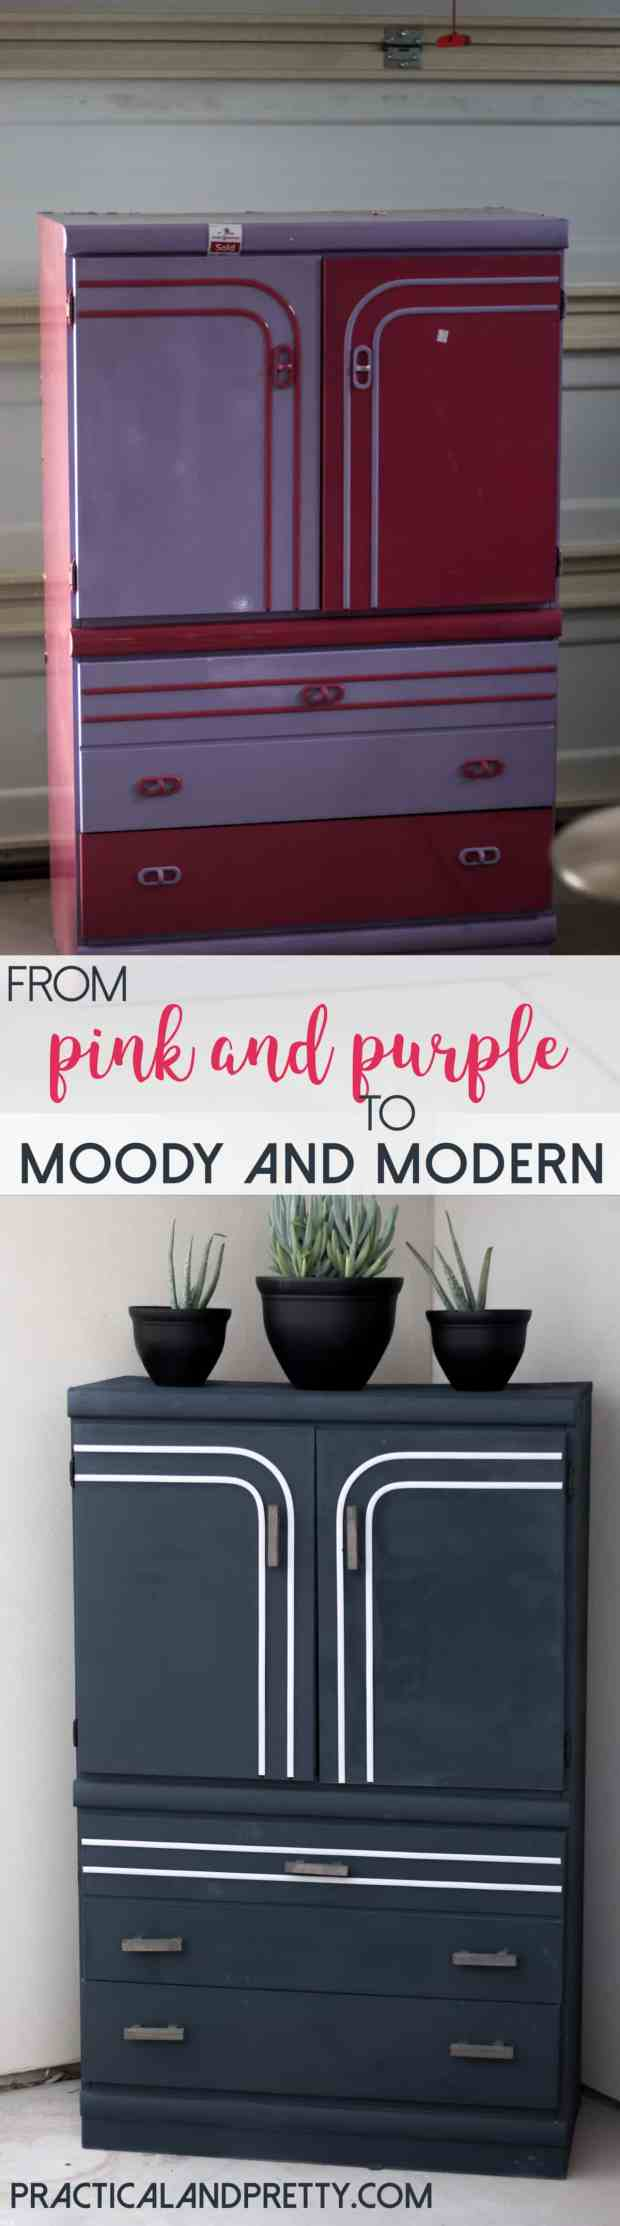 See how I made over this find from Deseret Industries to make it more modern and moody! I love the DI so much because I love these transformations